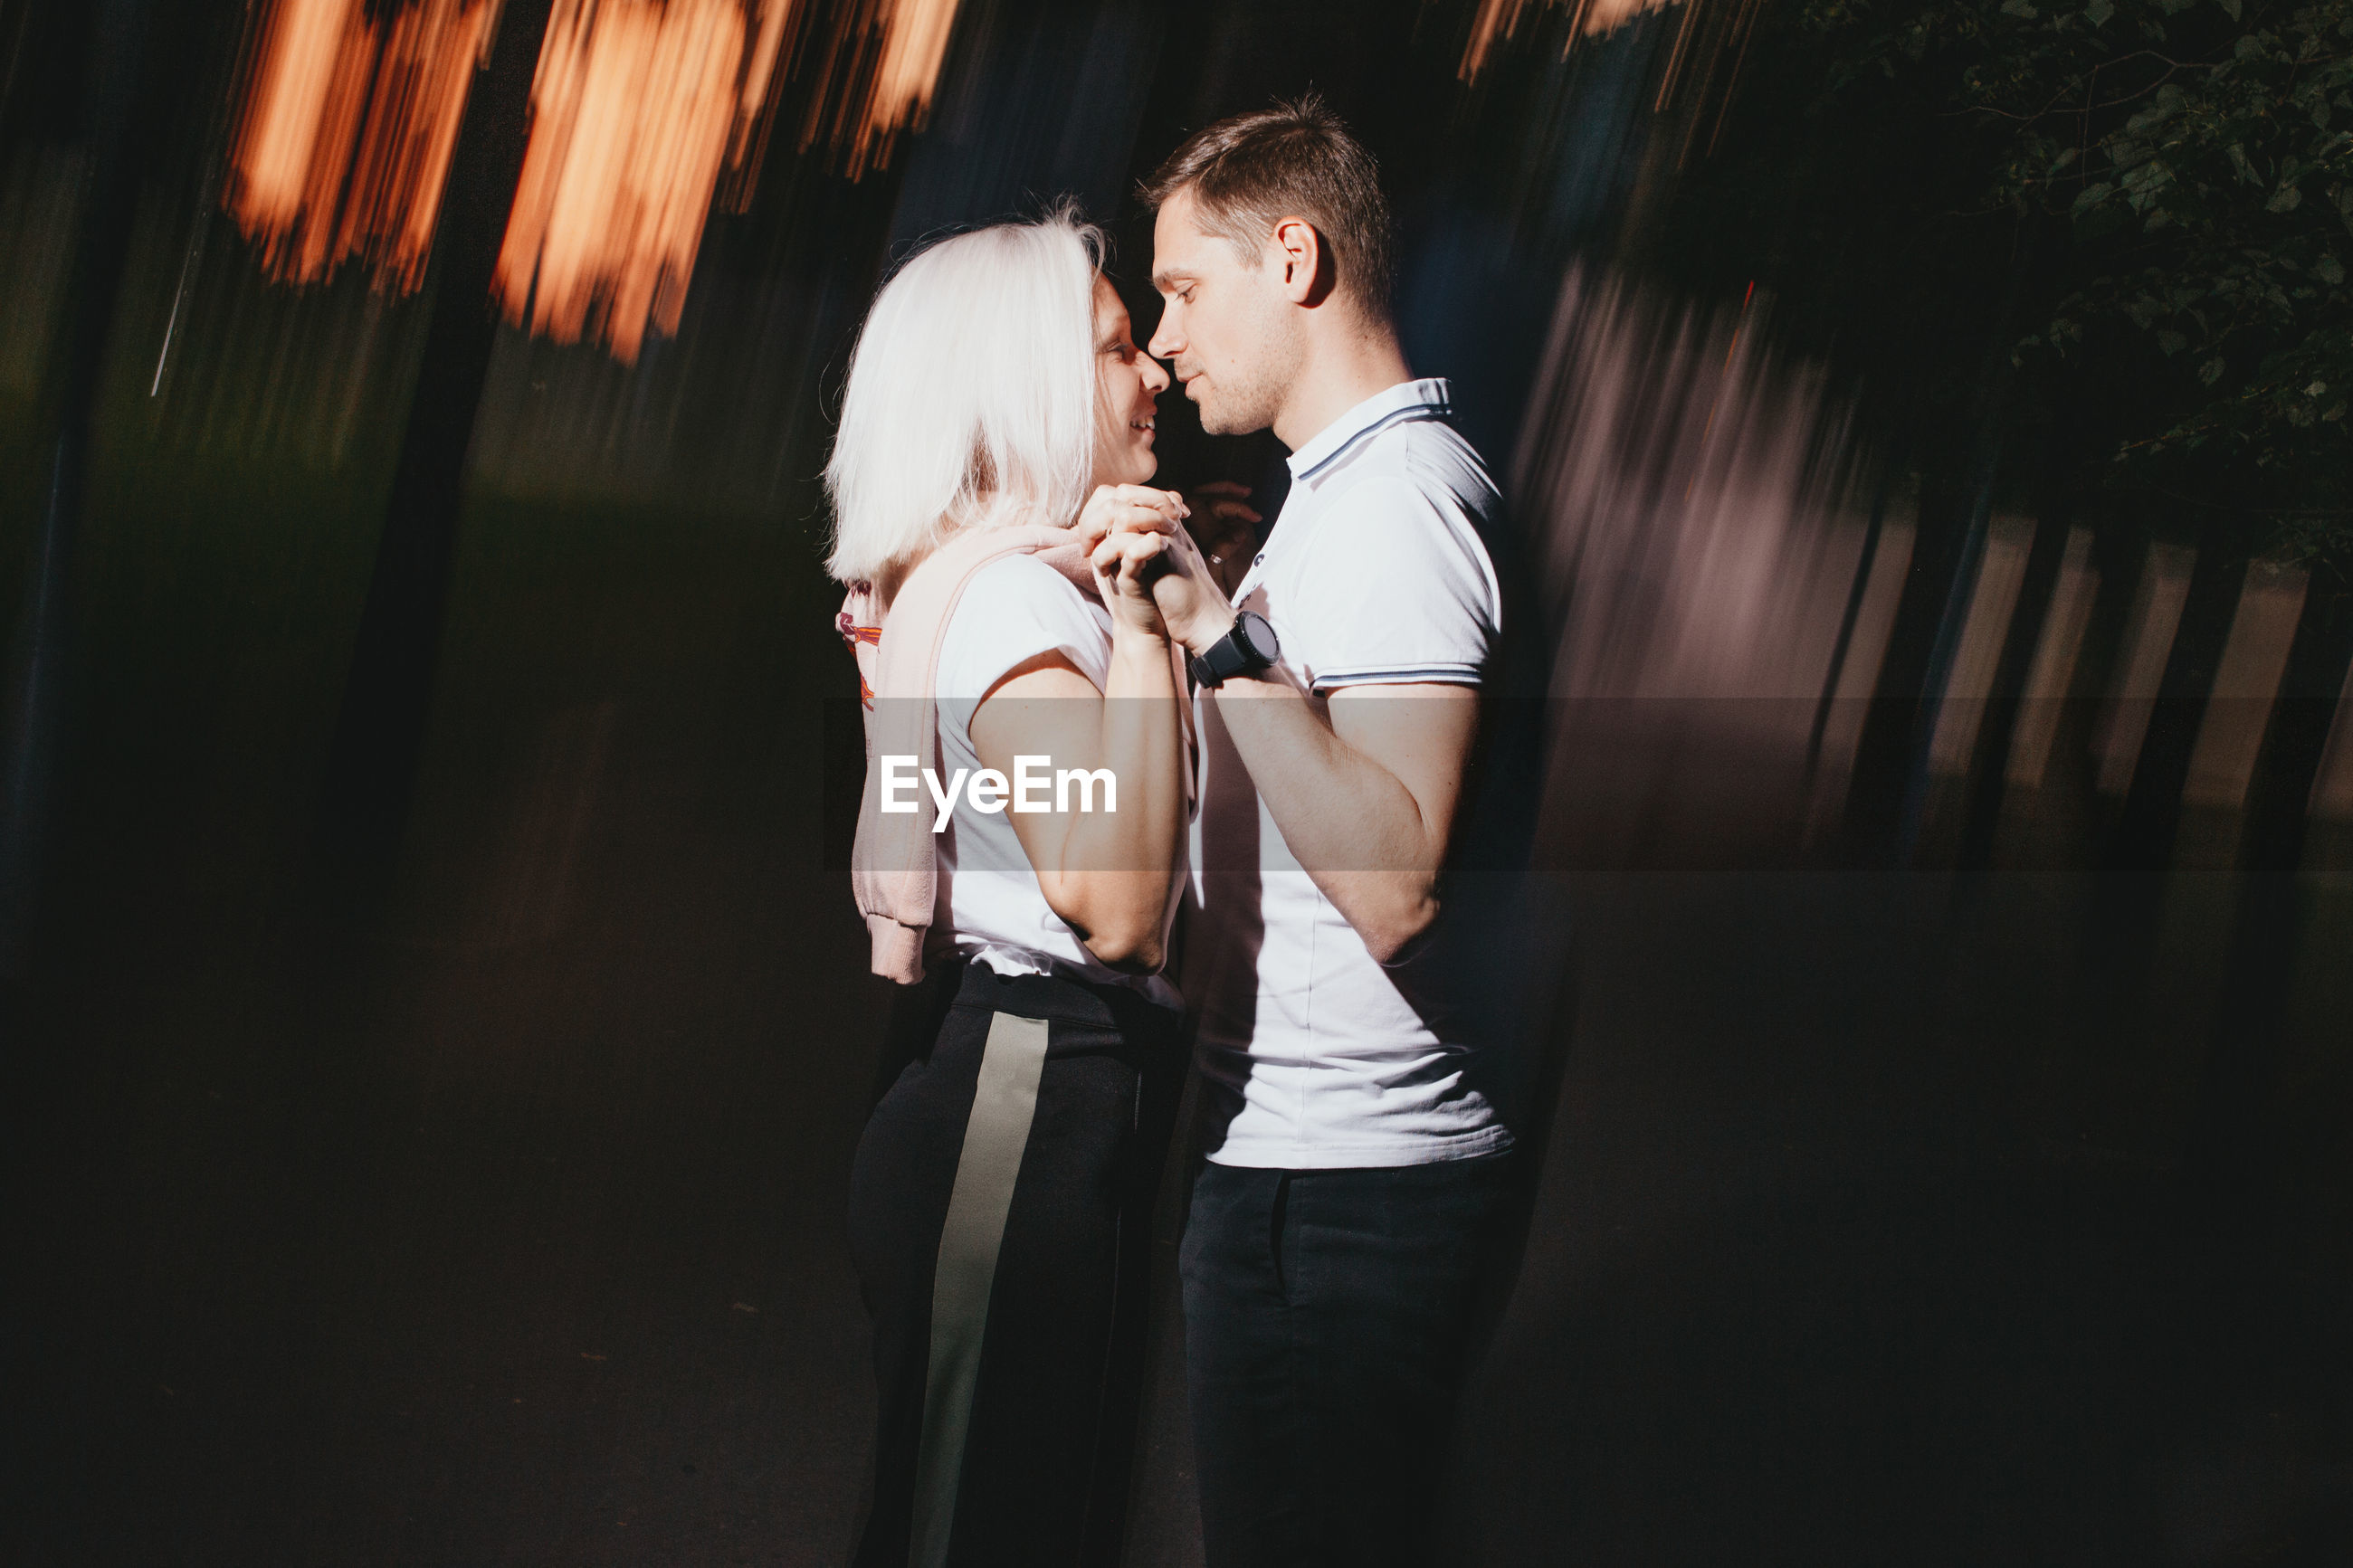 Romantic couple standing against blurred background